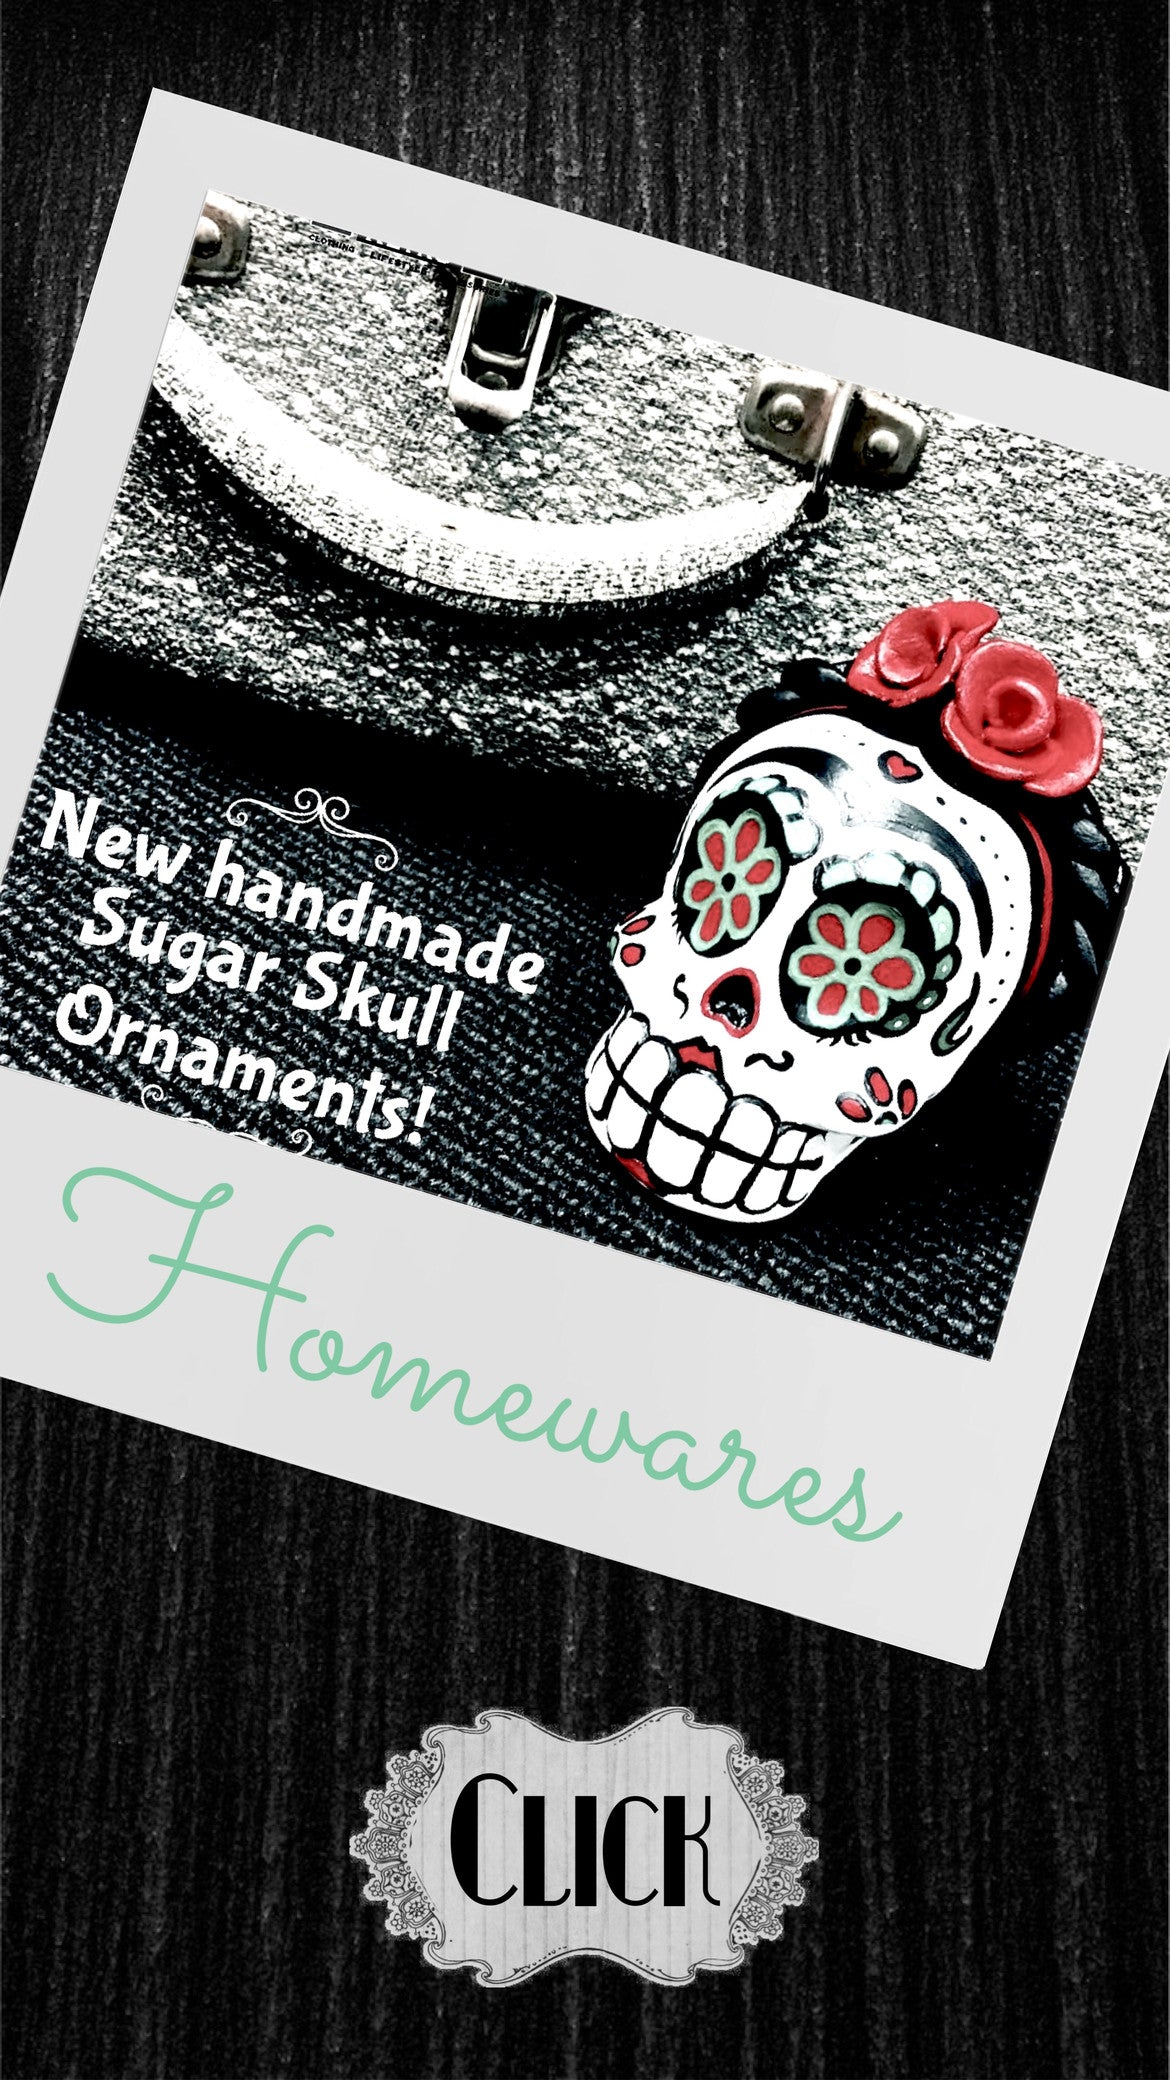 Accessories and homewares